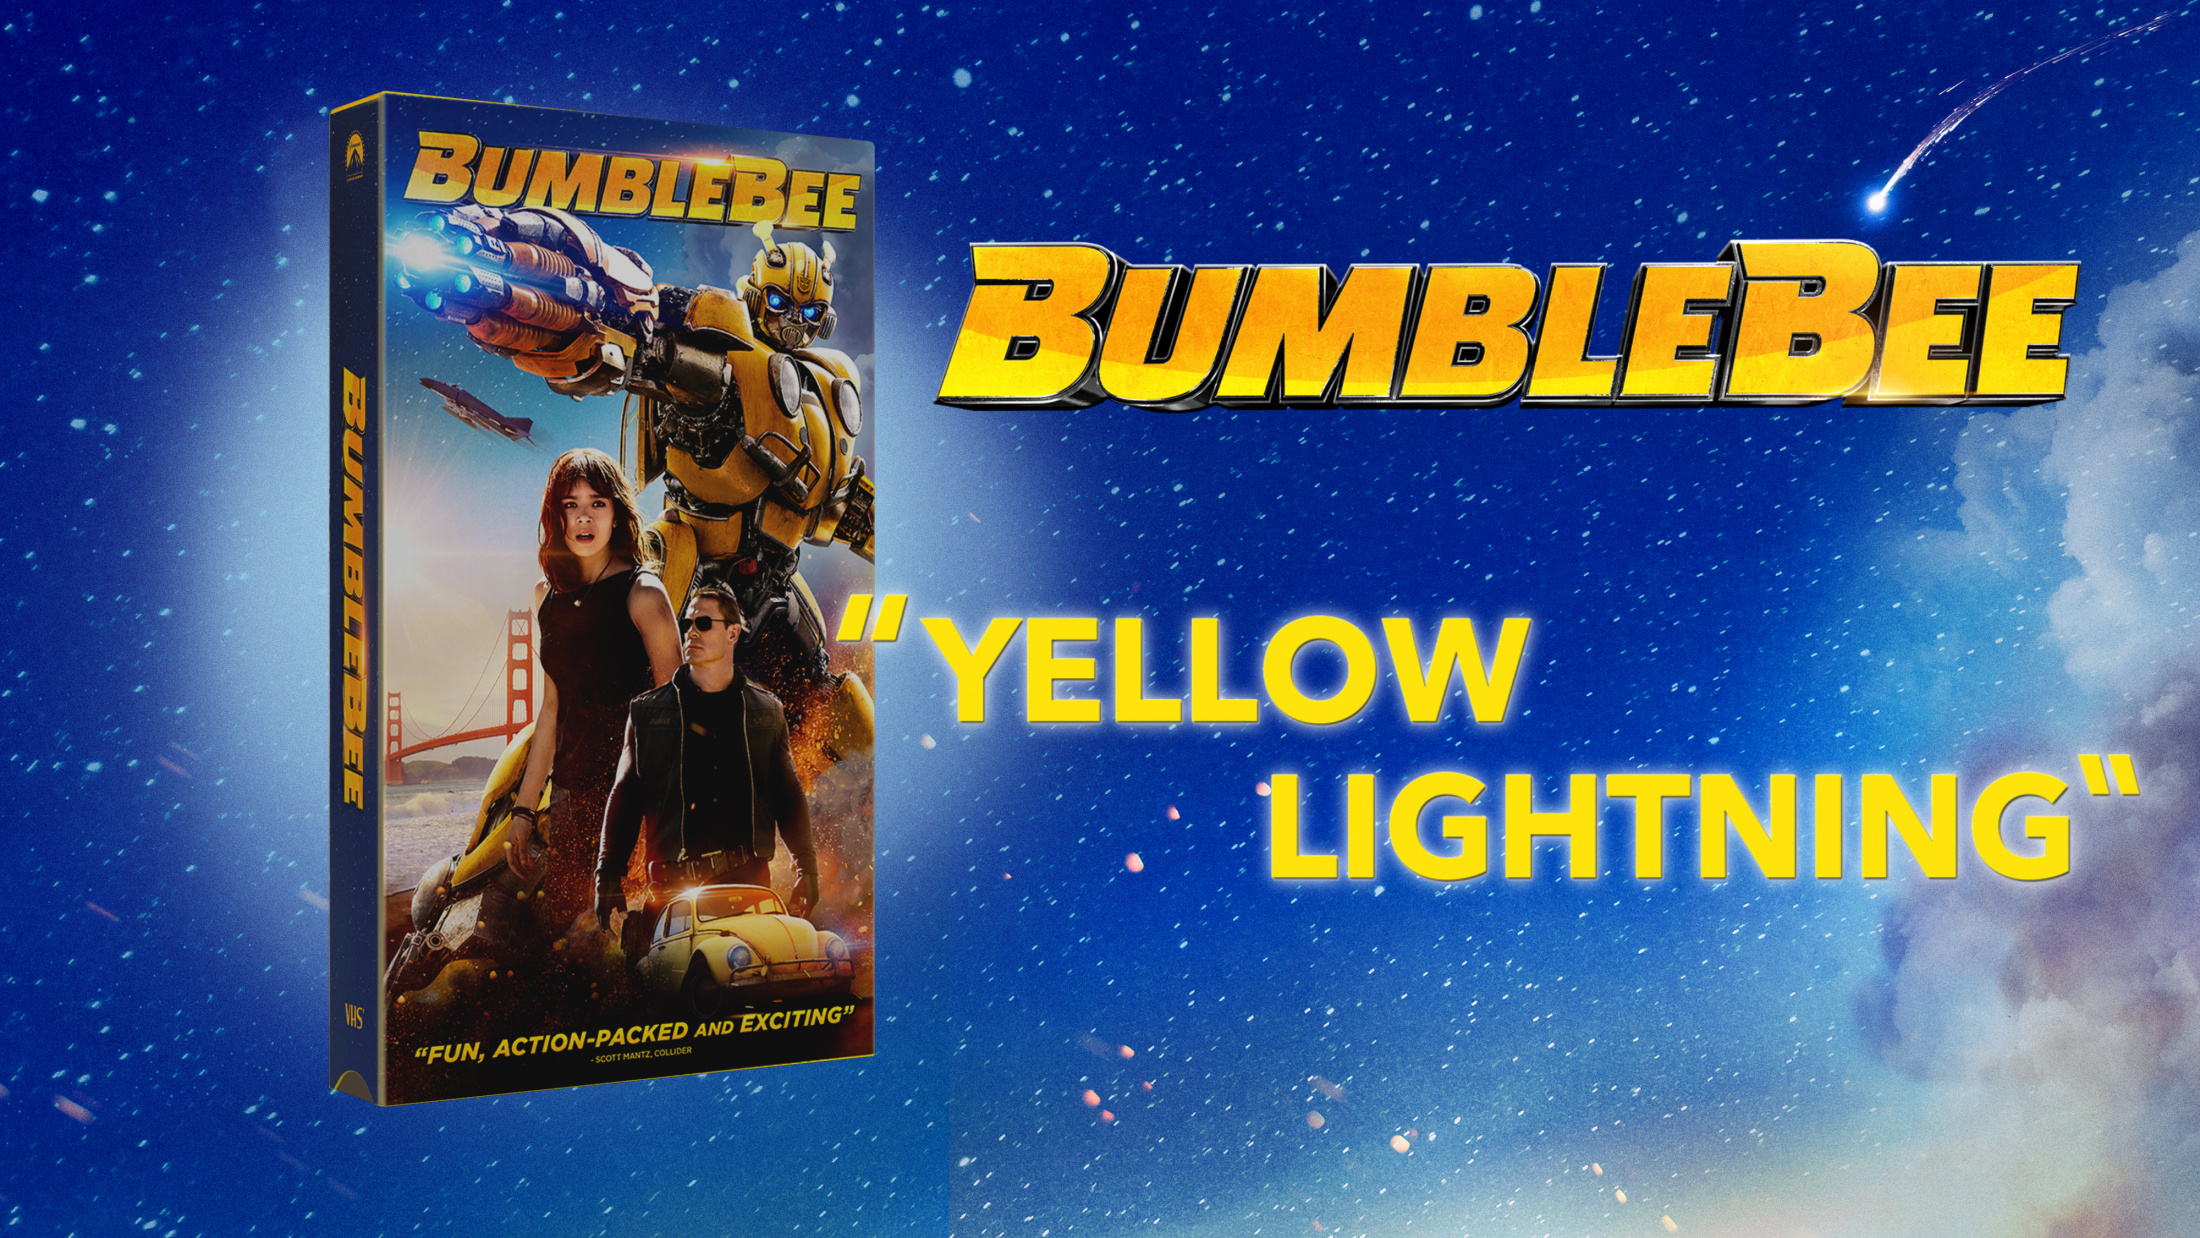 Image Media for Bumblebee